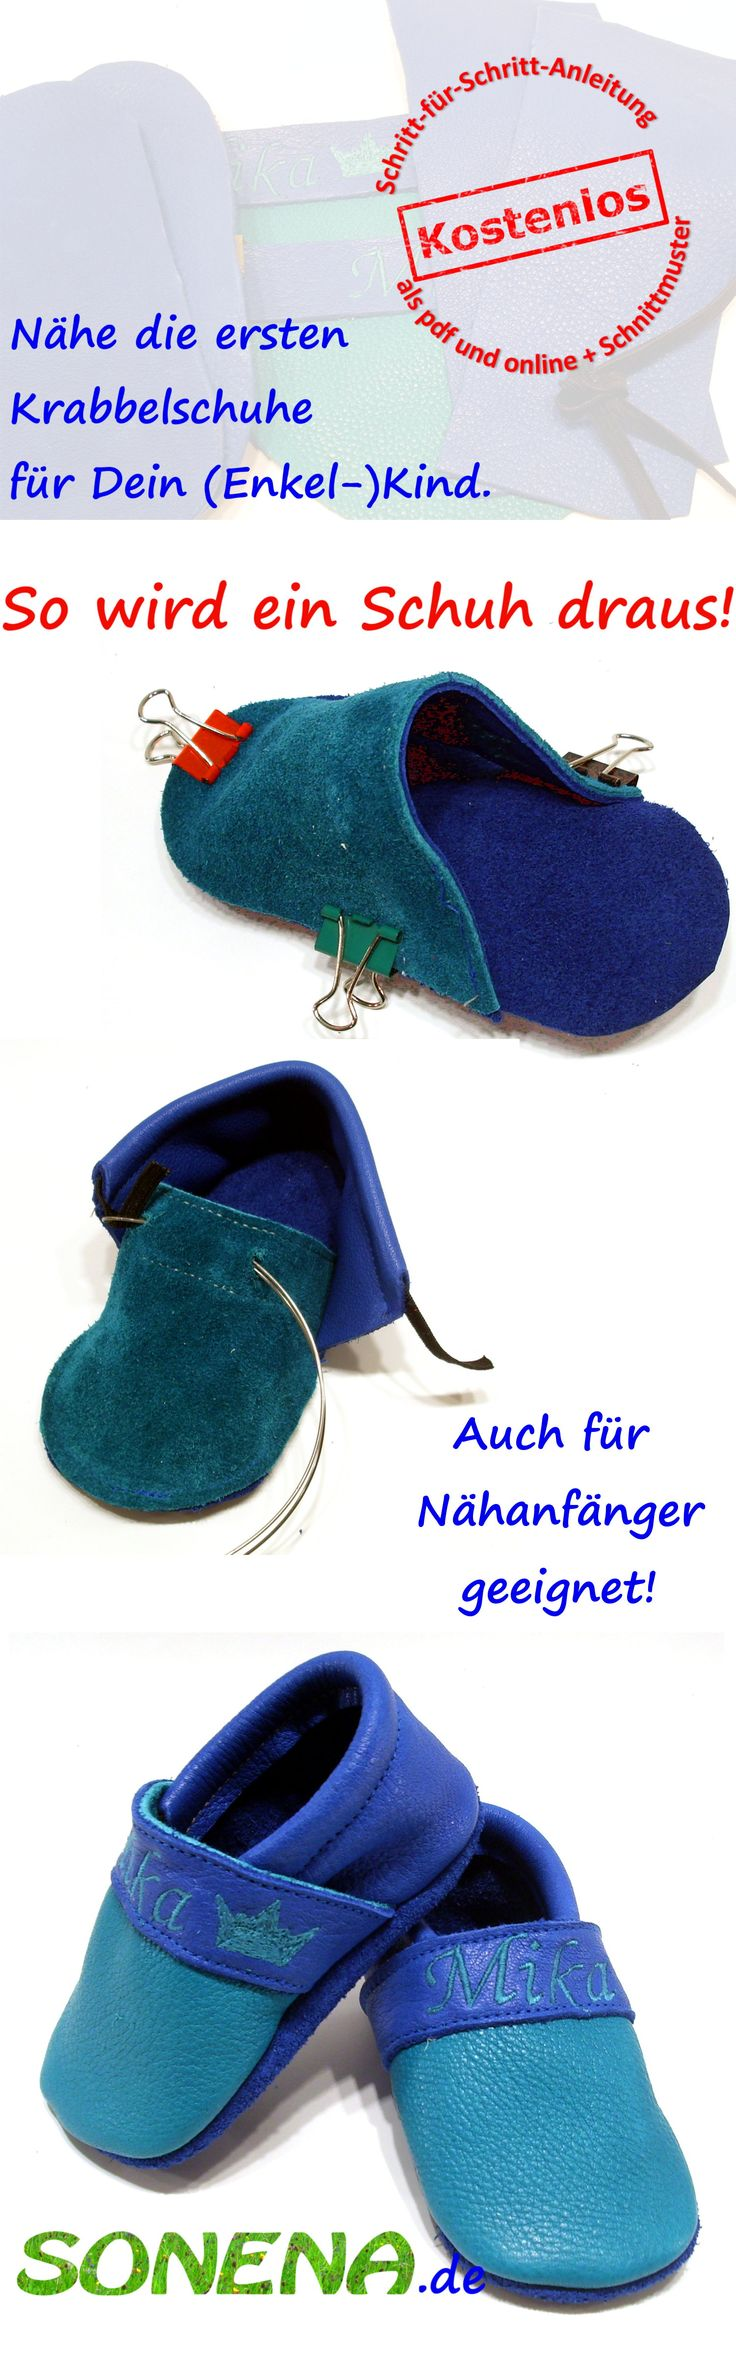 74 best Baby - Schnittmuster - Nähen images on Pinterest | Sewing ...